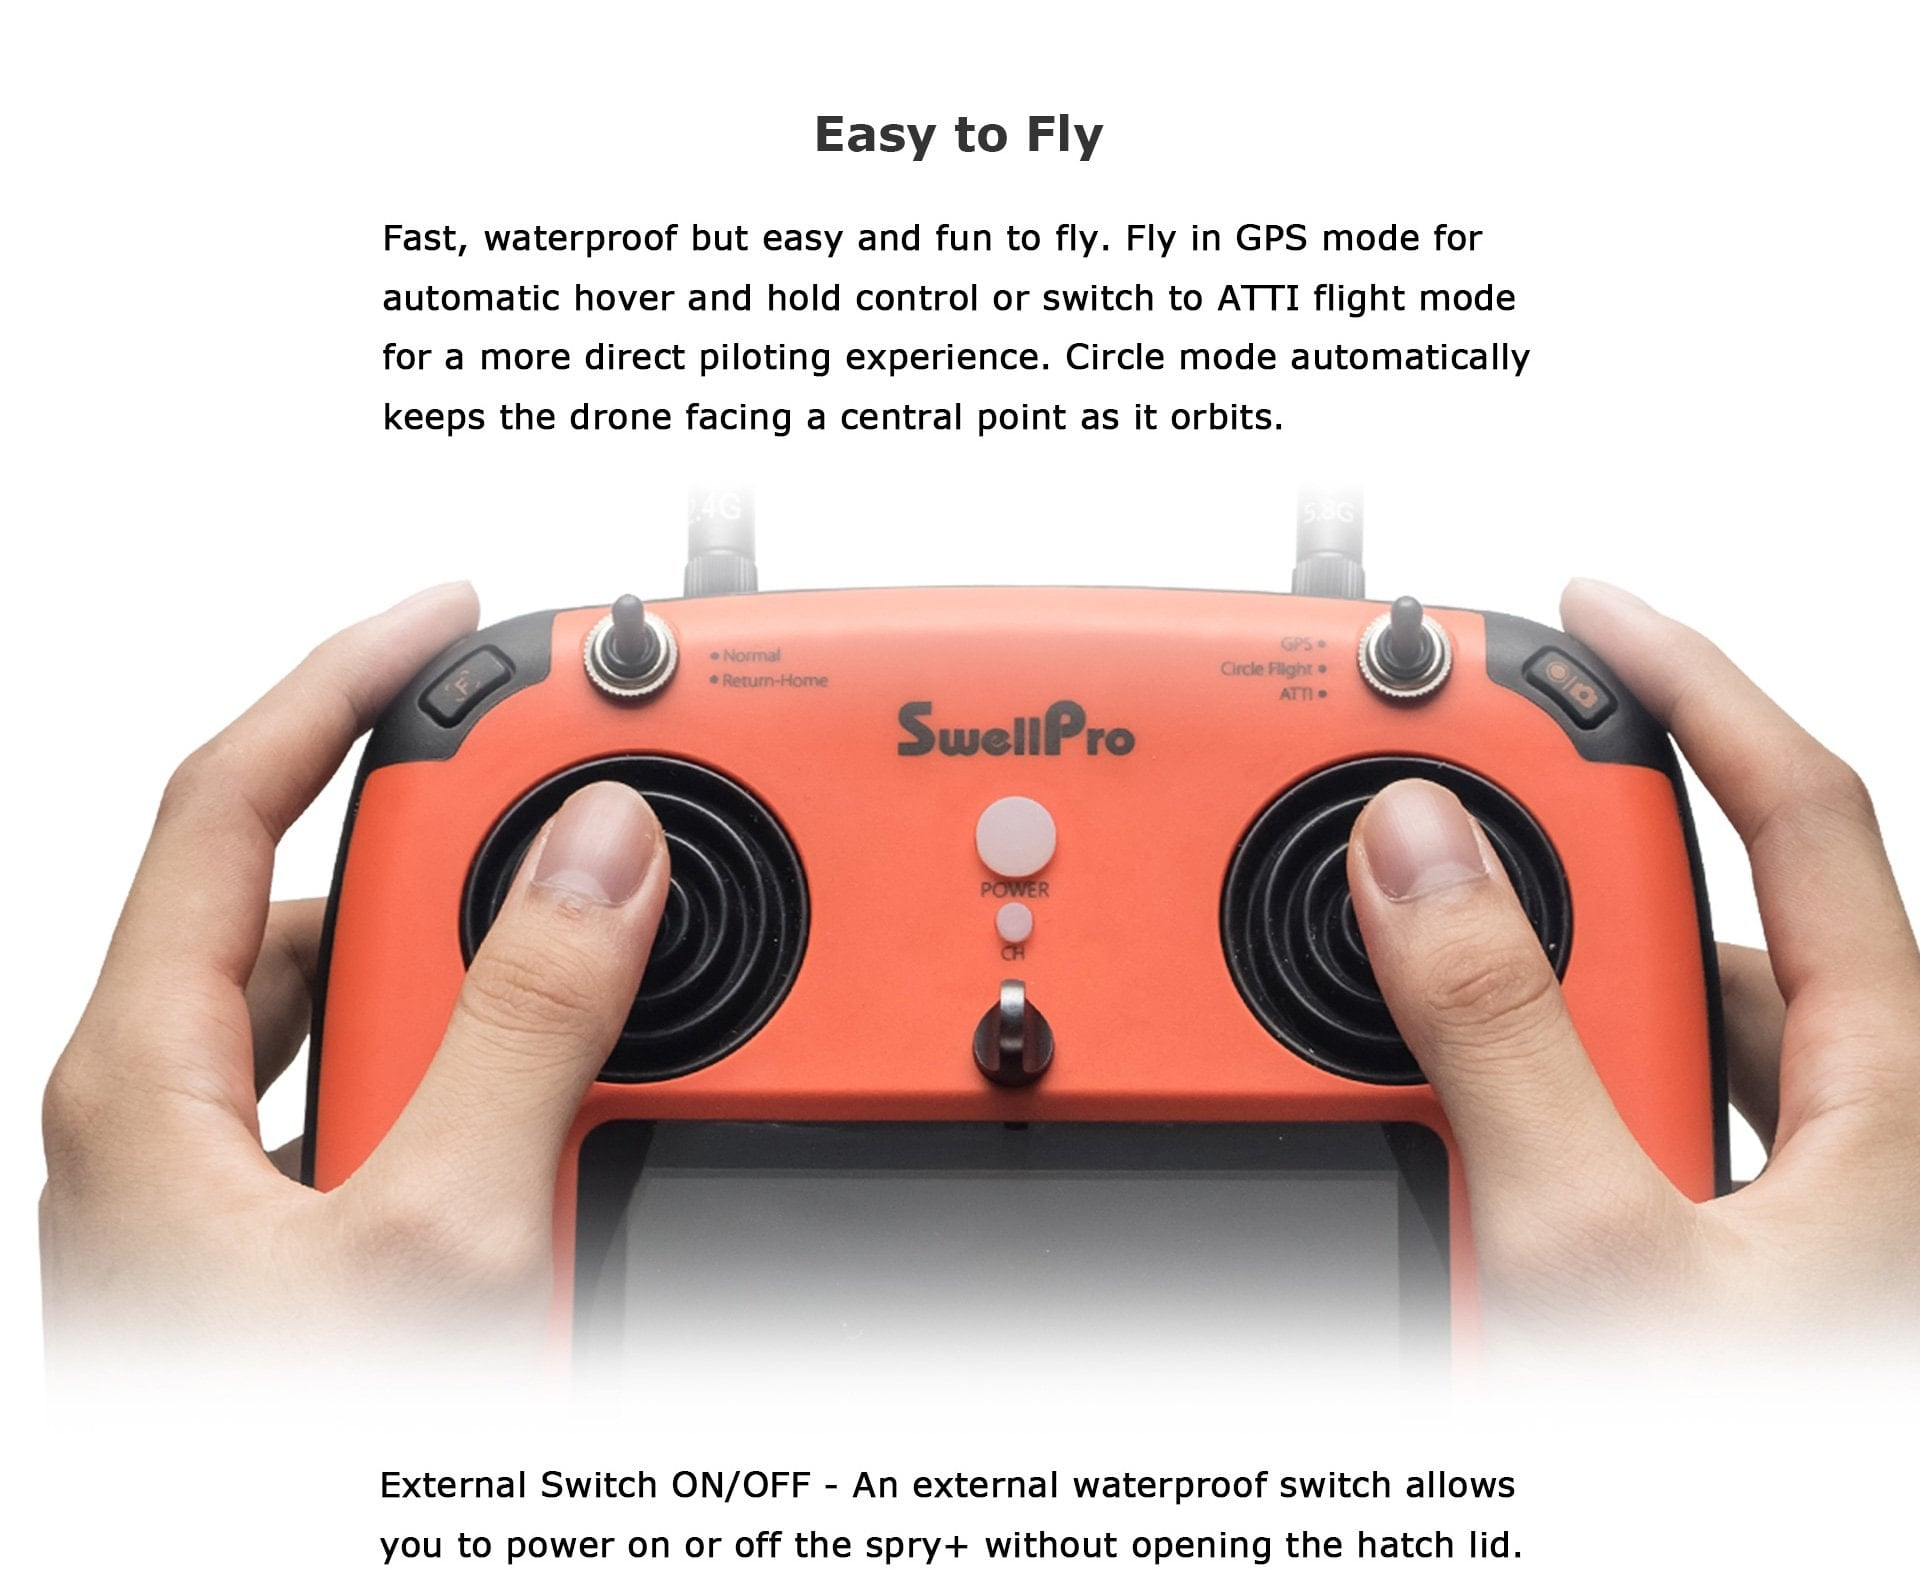 SwellPro - Spry+ an Easy to Fligh Drone